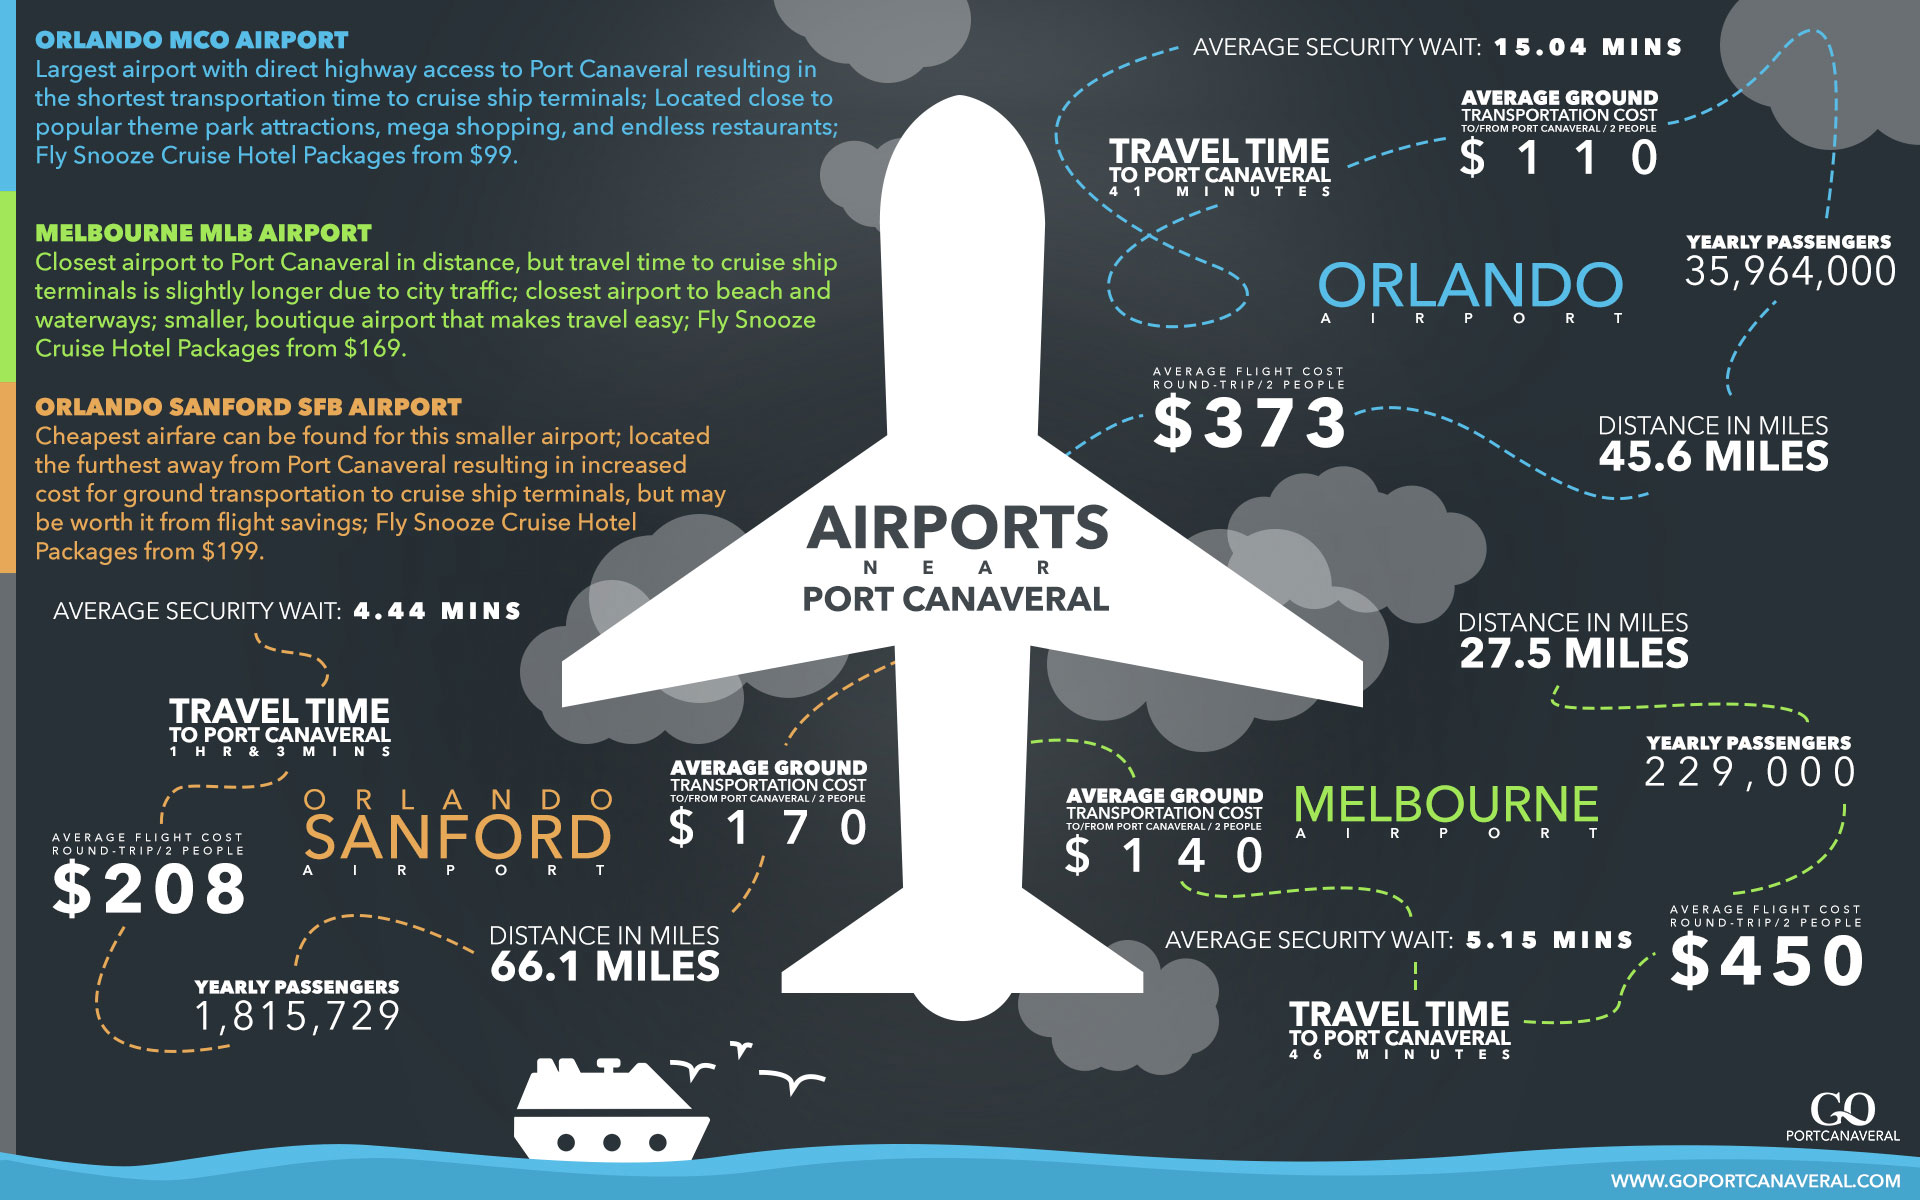 Airports near Port Canaveral